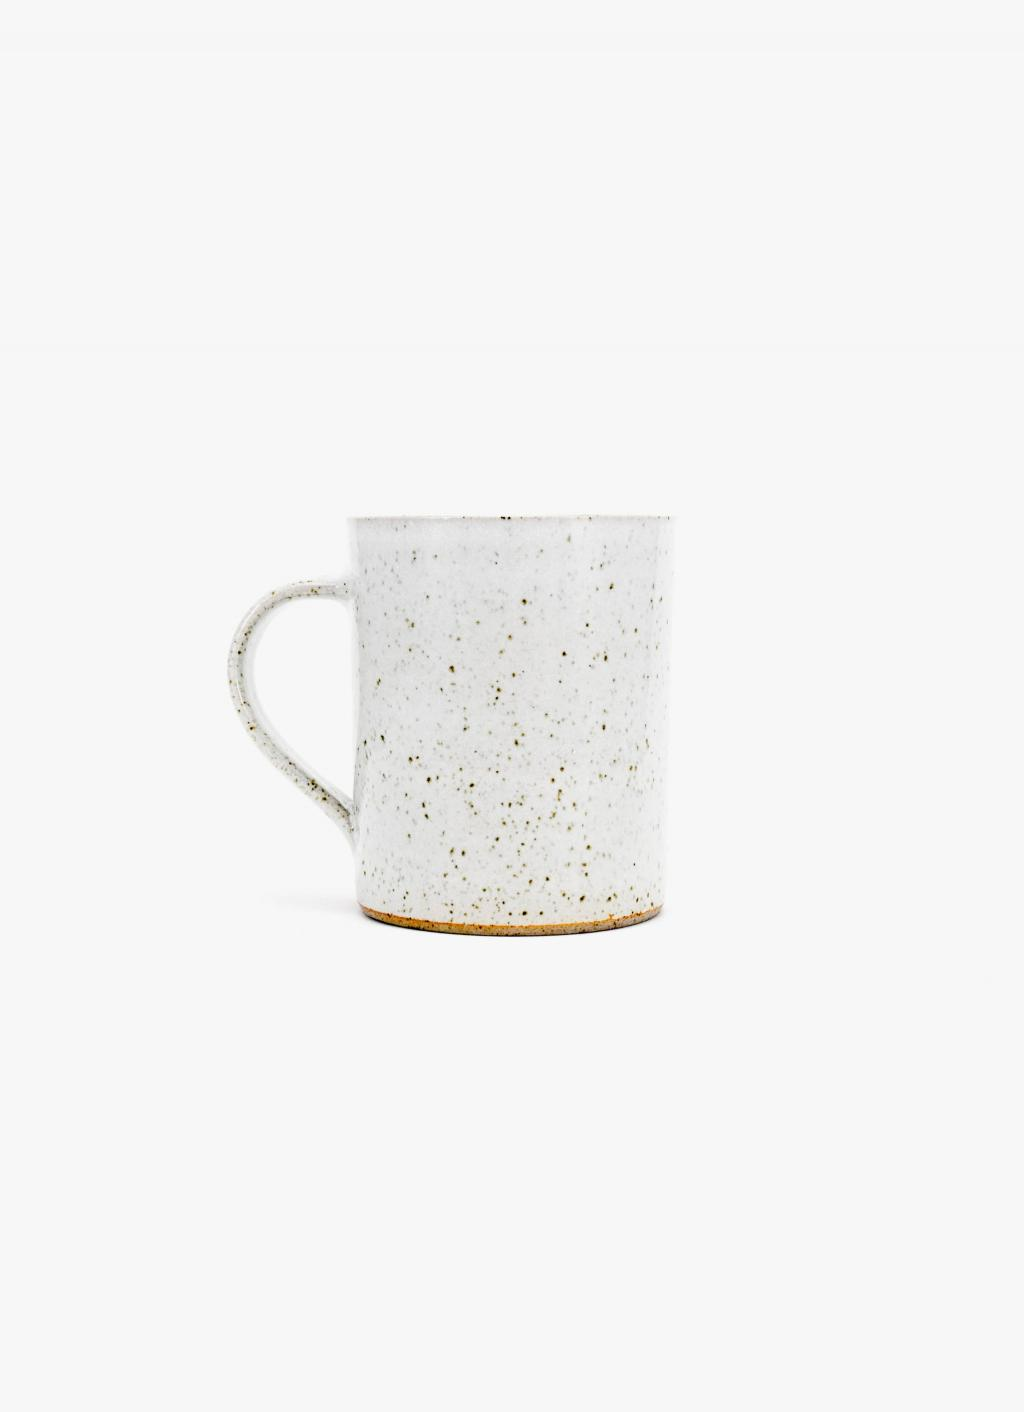 James and Tilla Waters - Thrown Stoneware - Mug - White glaze